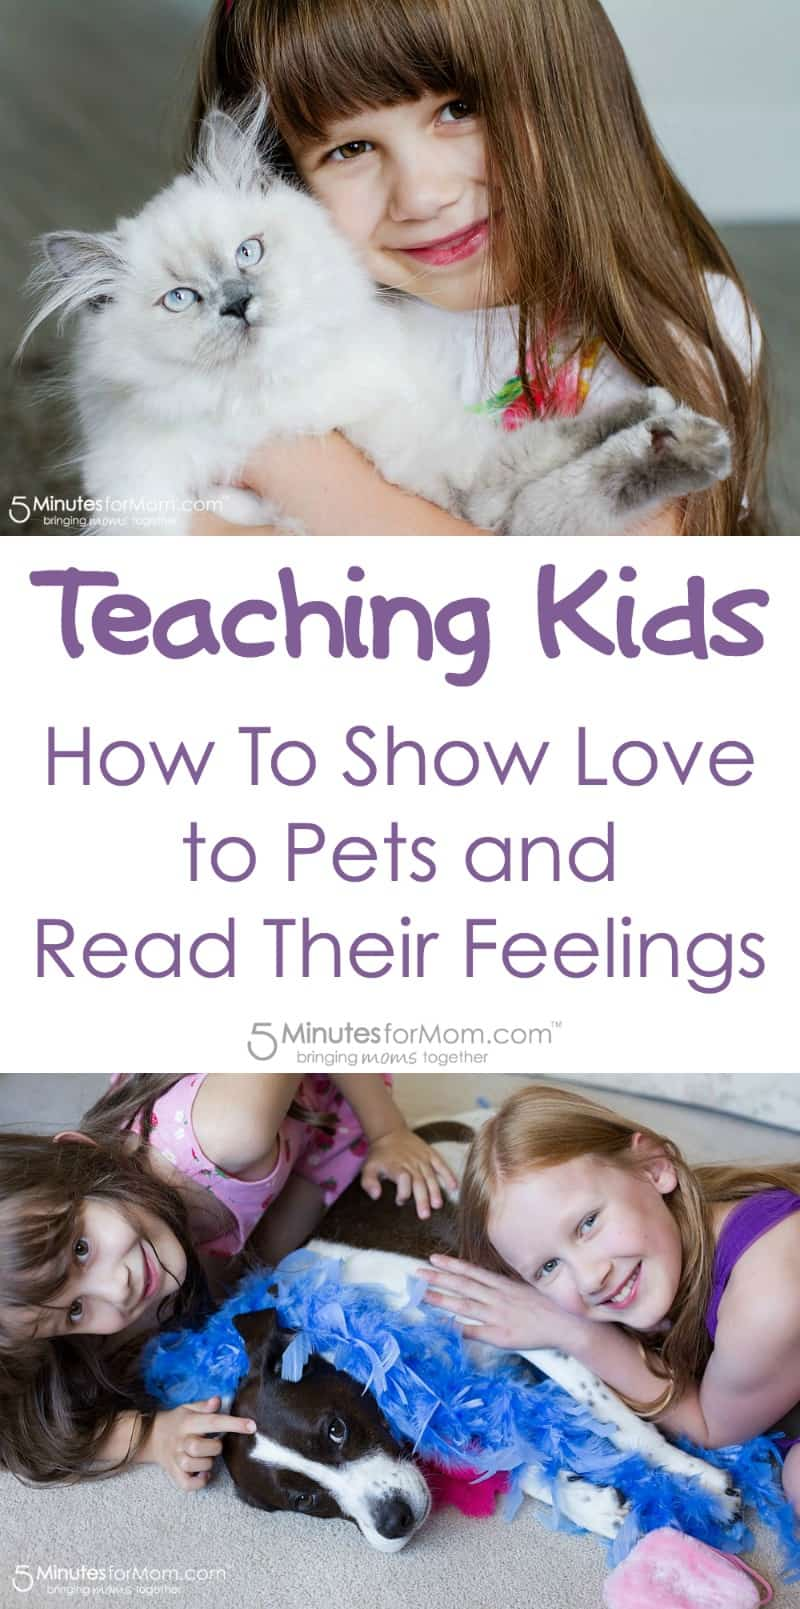 Teaching kids how to show love to pets and read their feelings